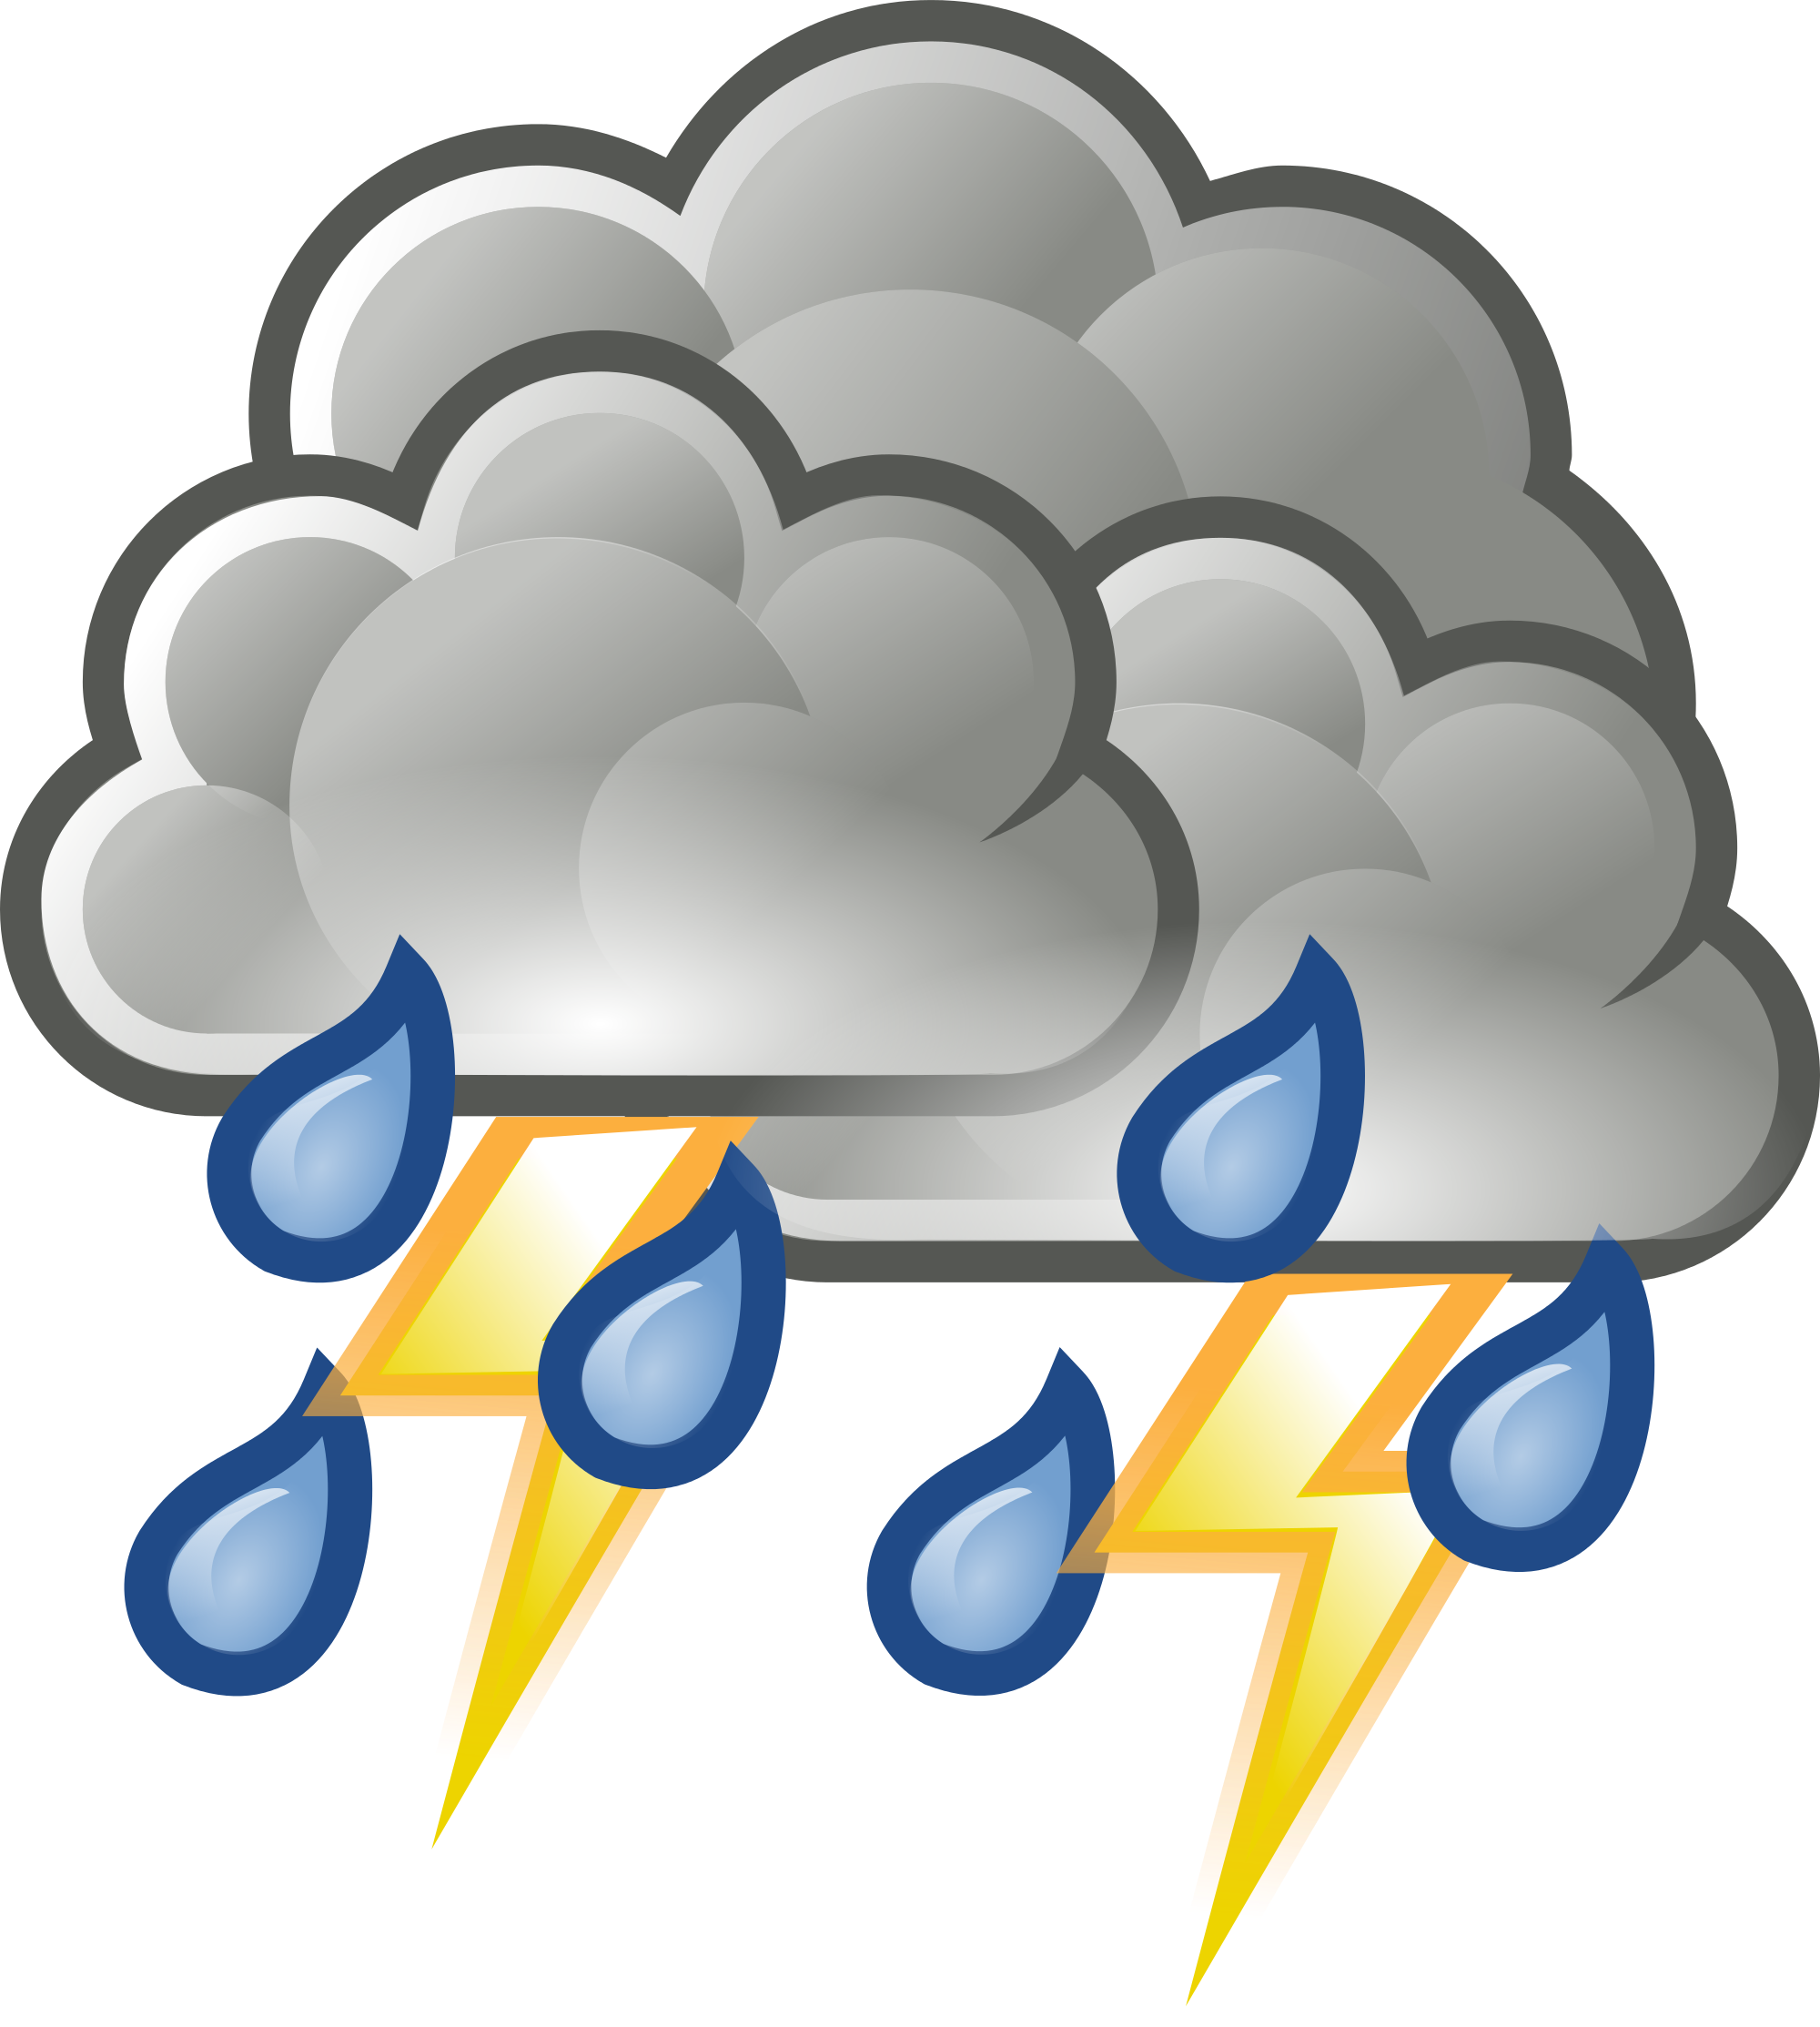 Weather clipart severe weather. Forecast cancels somerville street